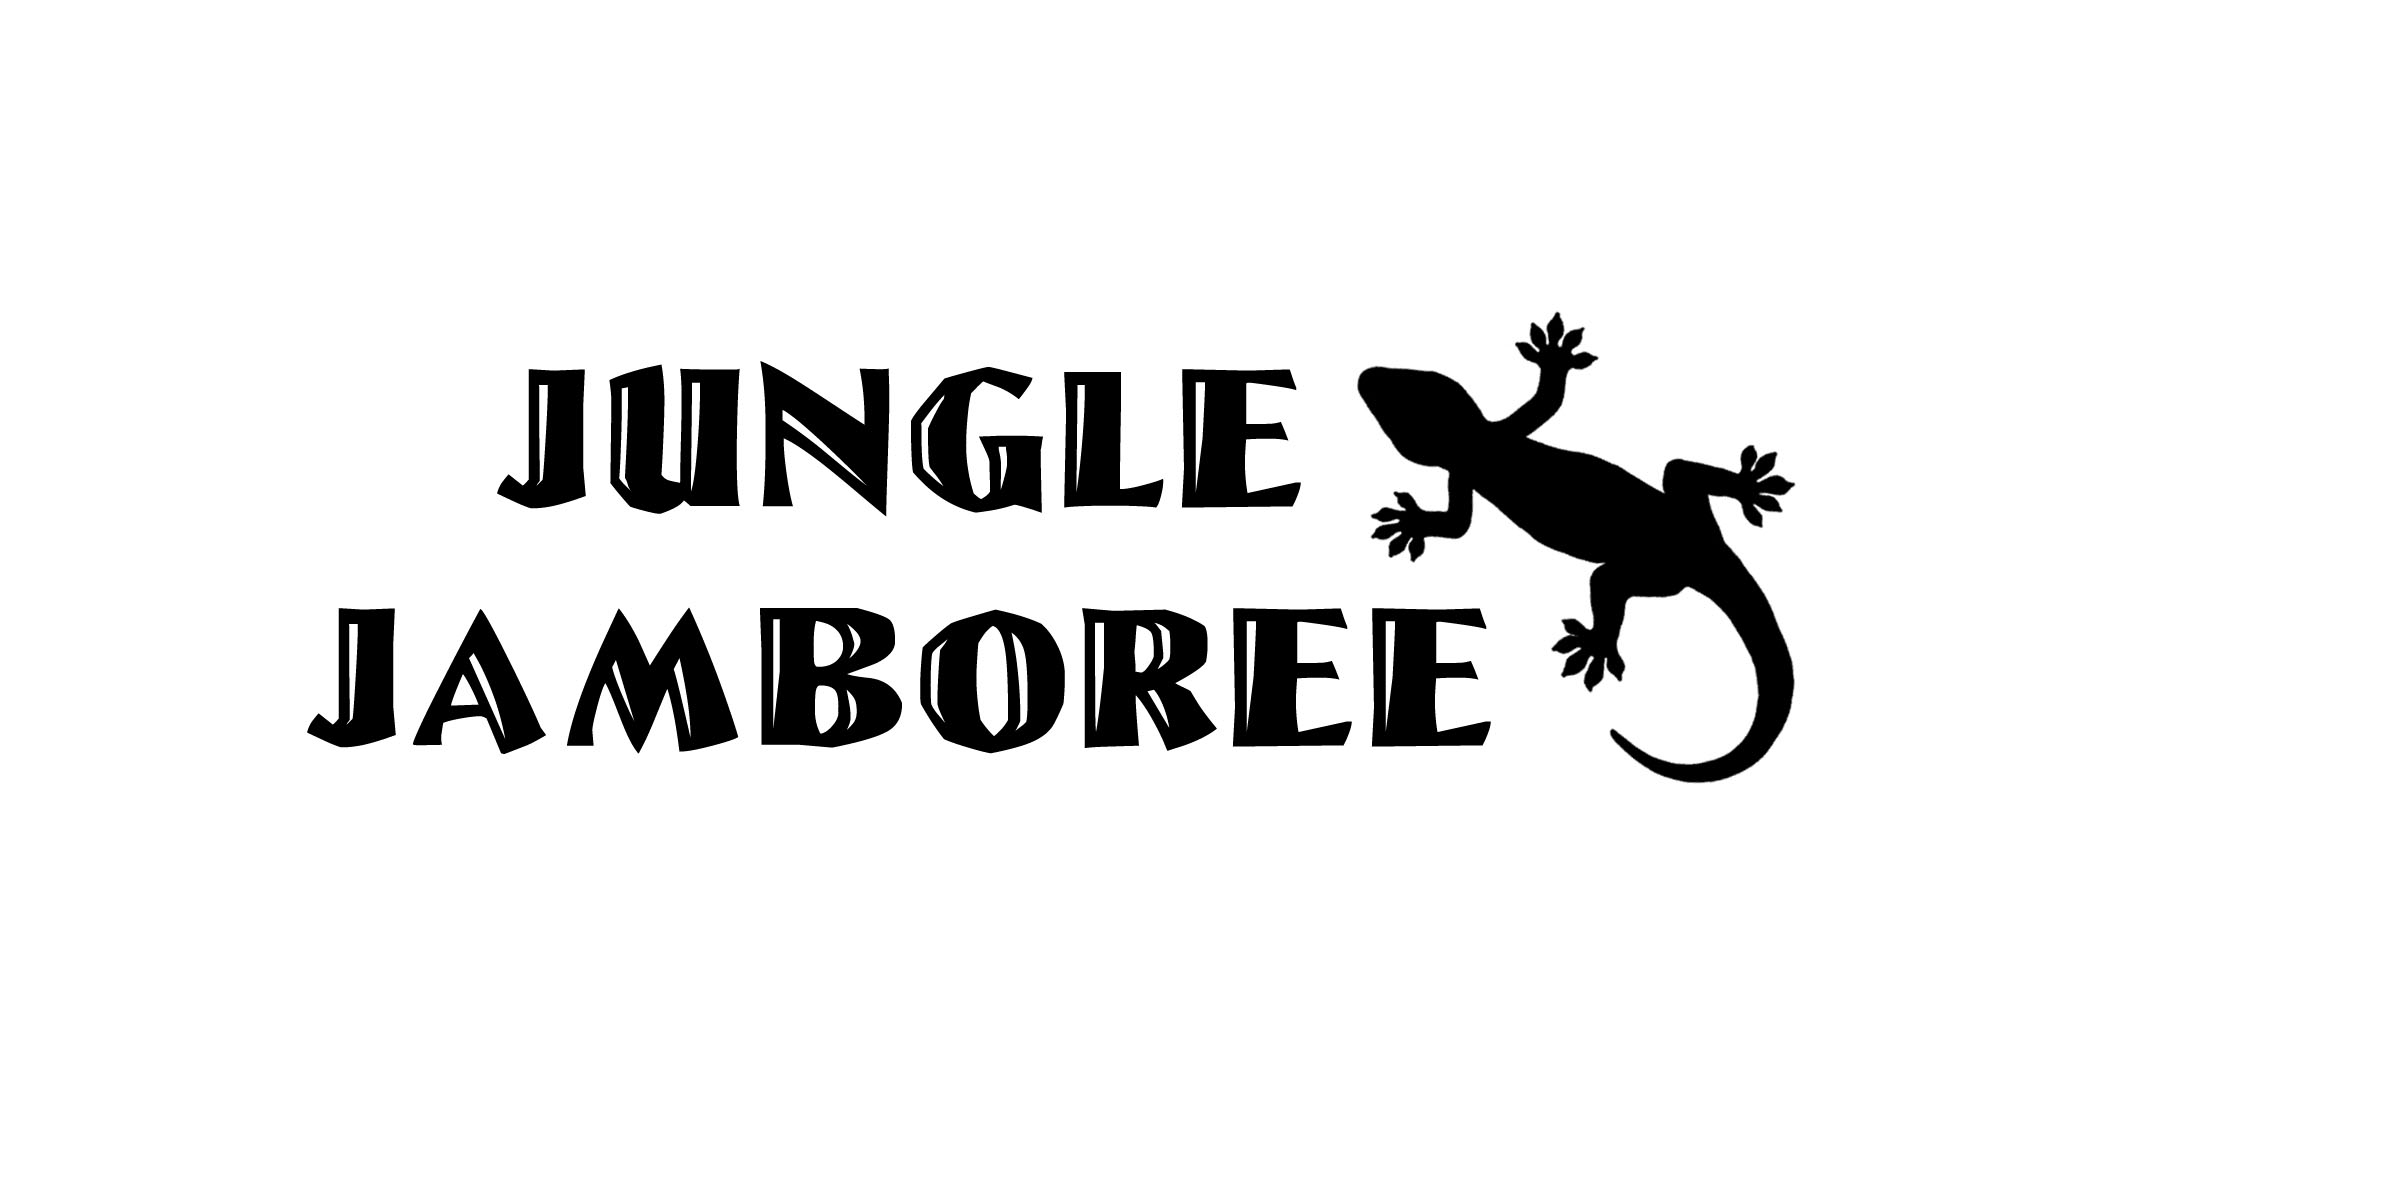 Jungle Jamboree